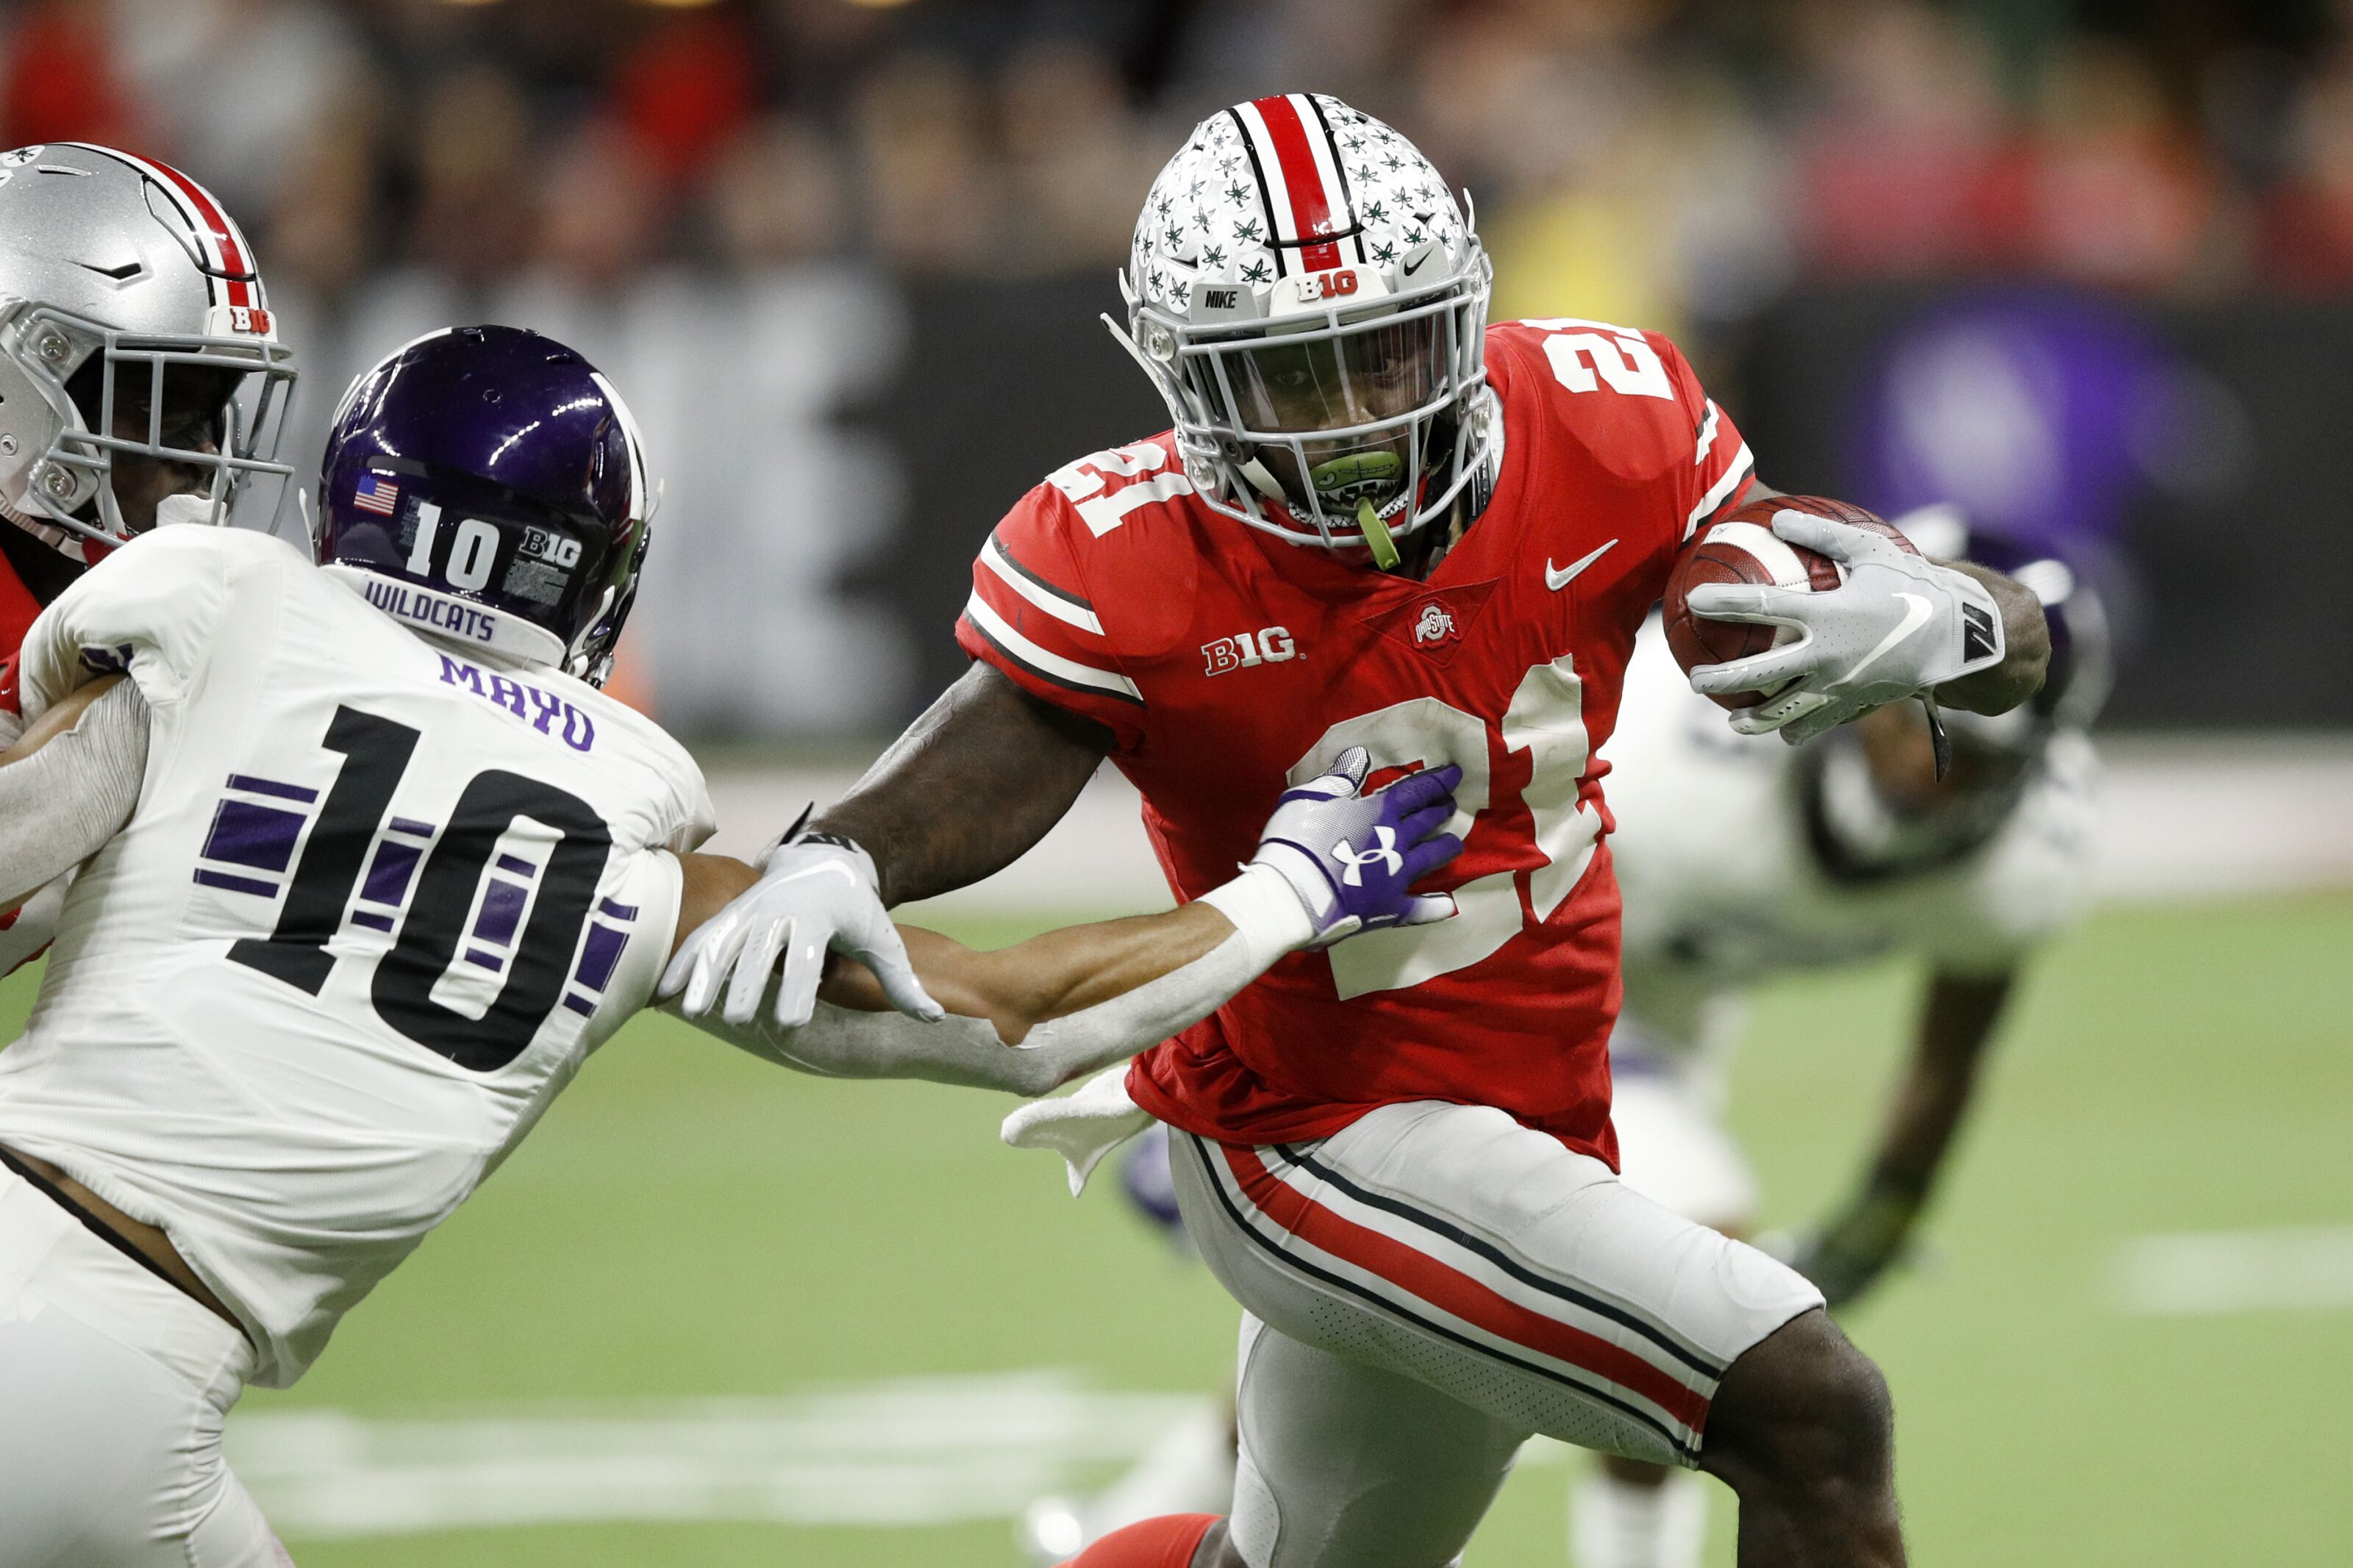 NFL mock draft: Chiefs' offense gets even better with projections